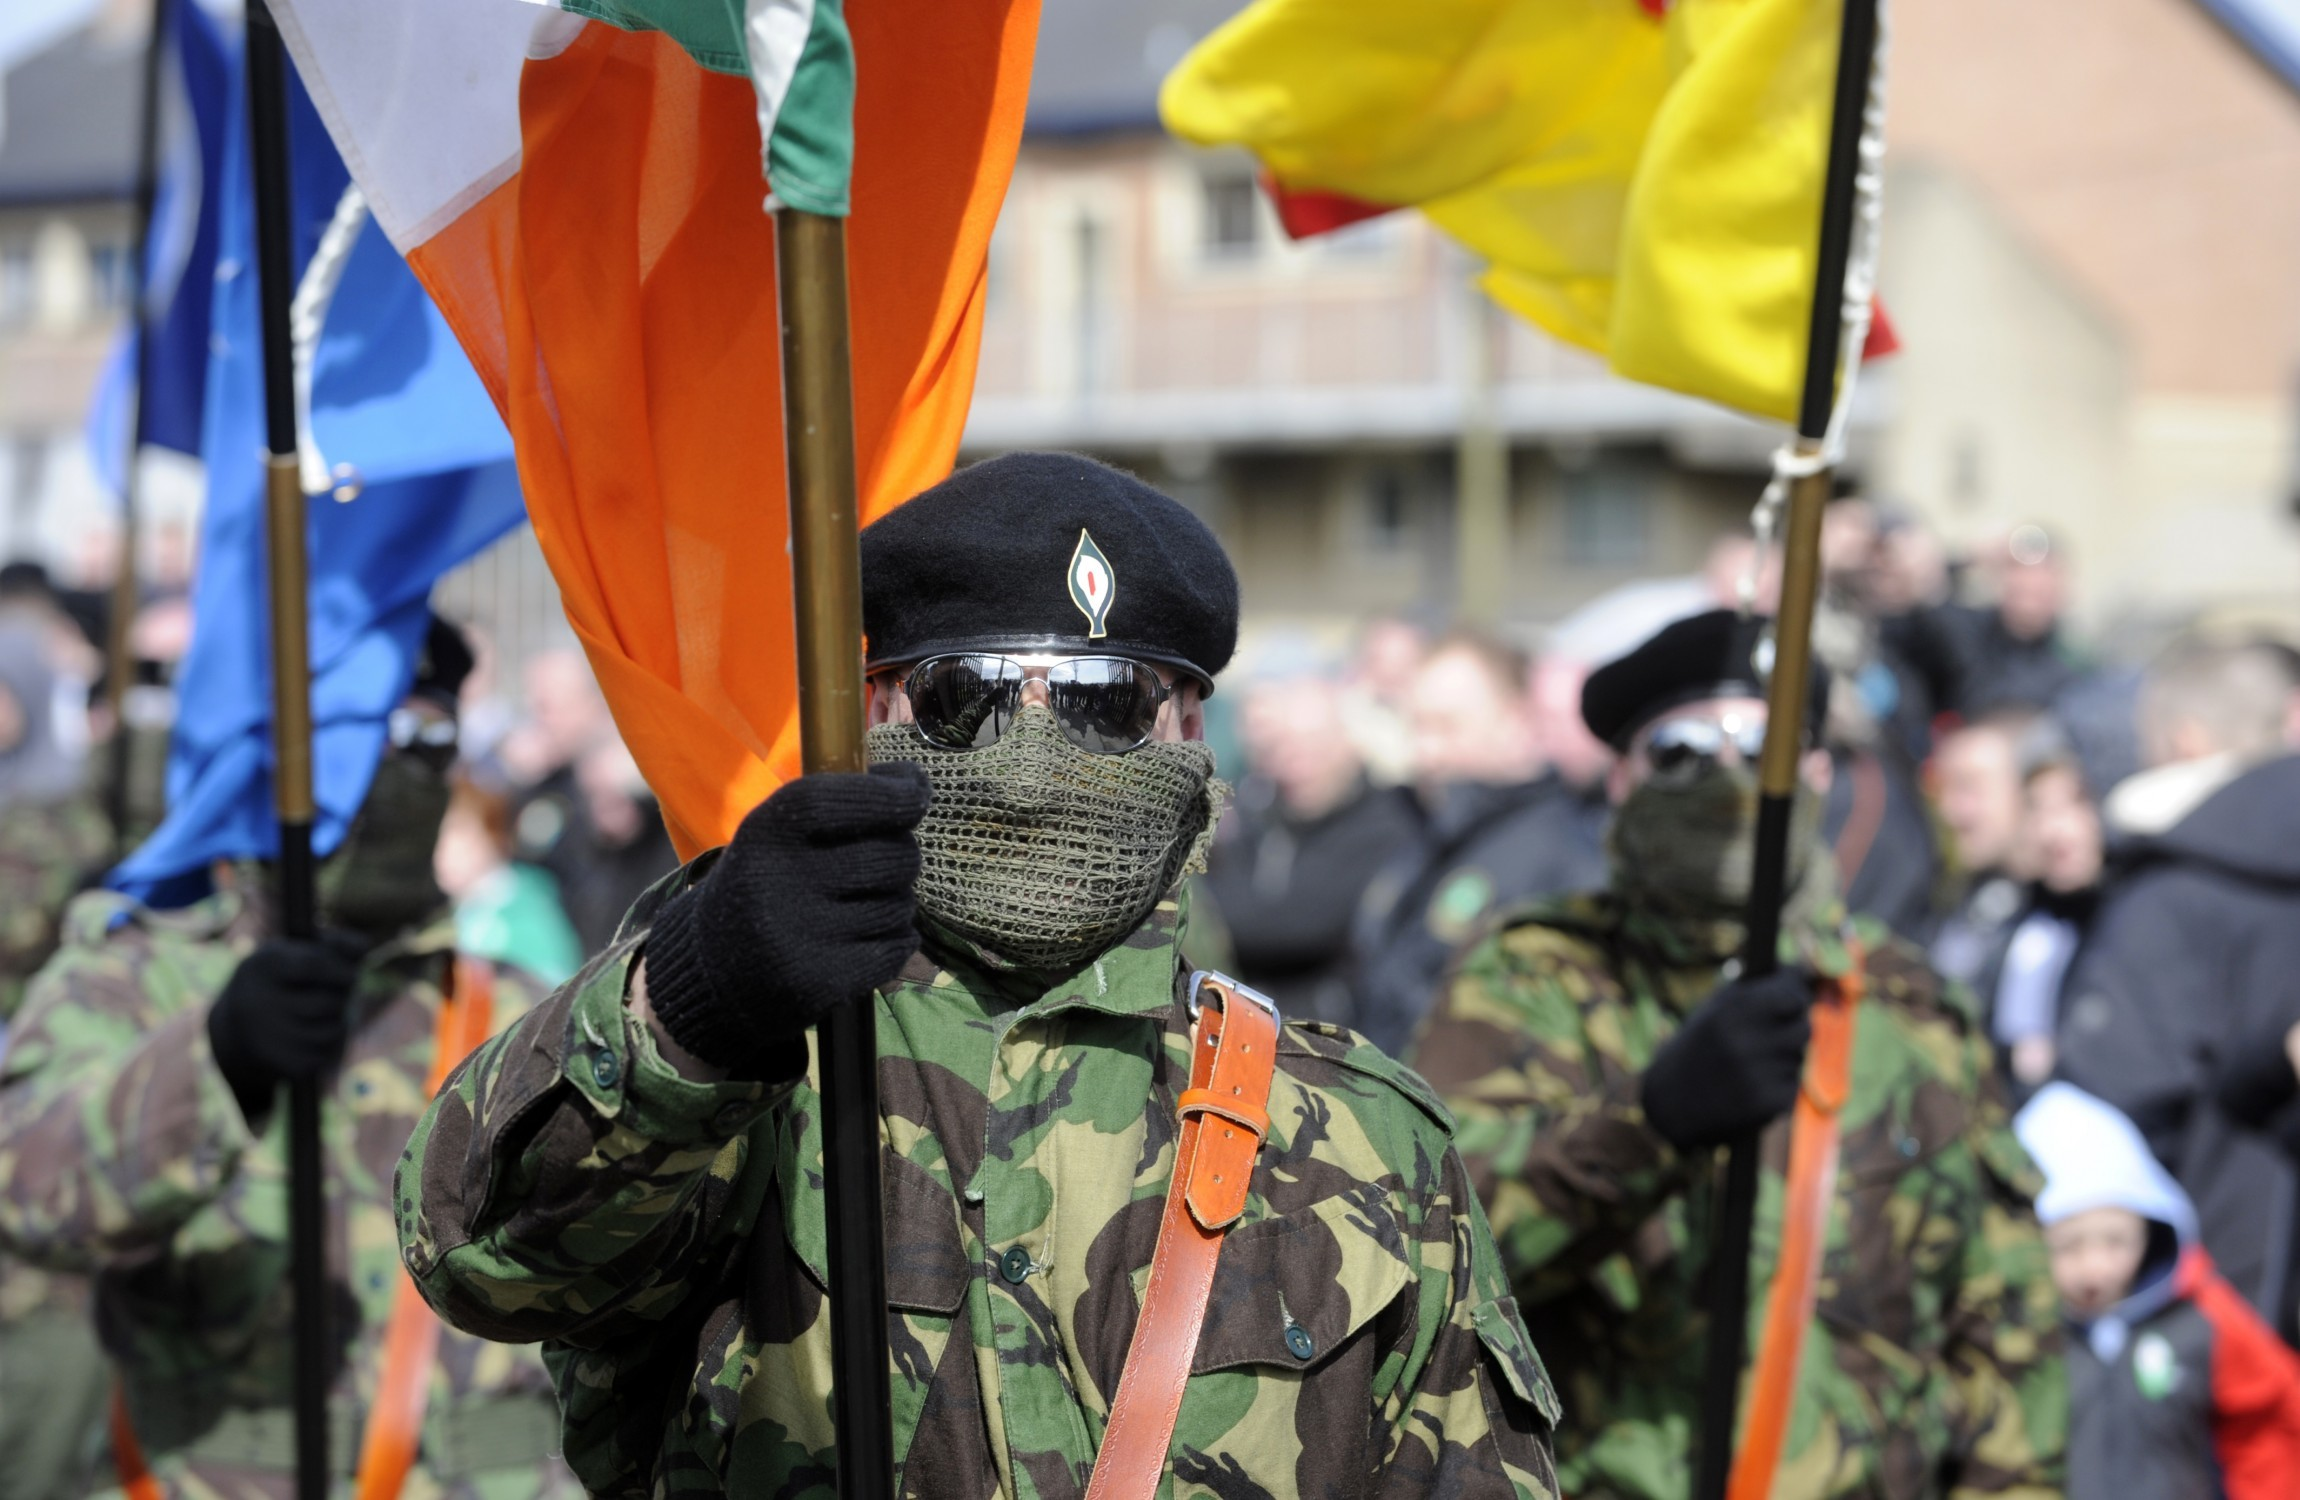 Gardai Probe 'new Ira' Group's Bomb Trade With Hutch Gang